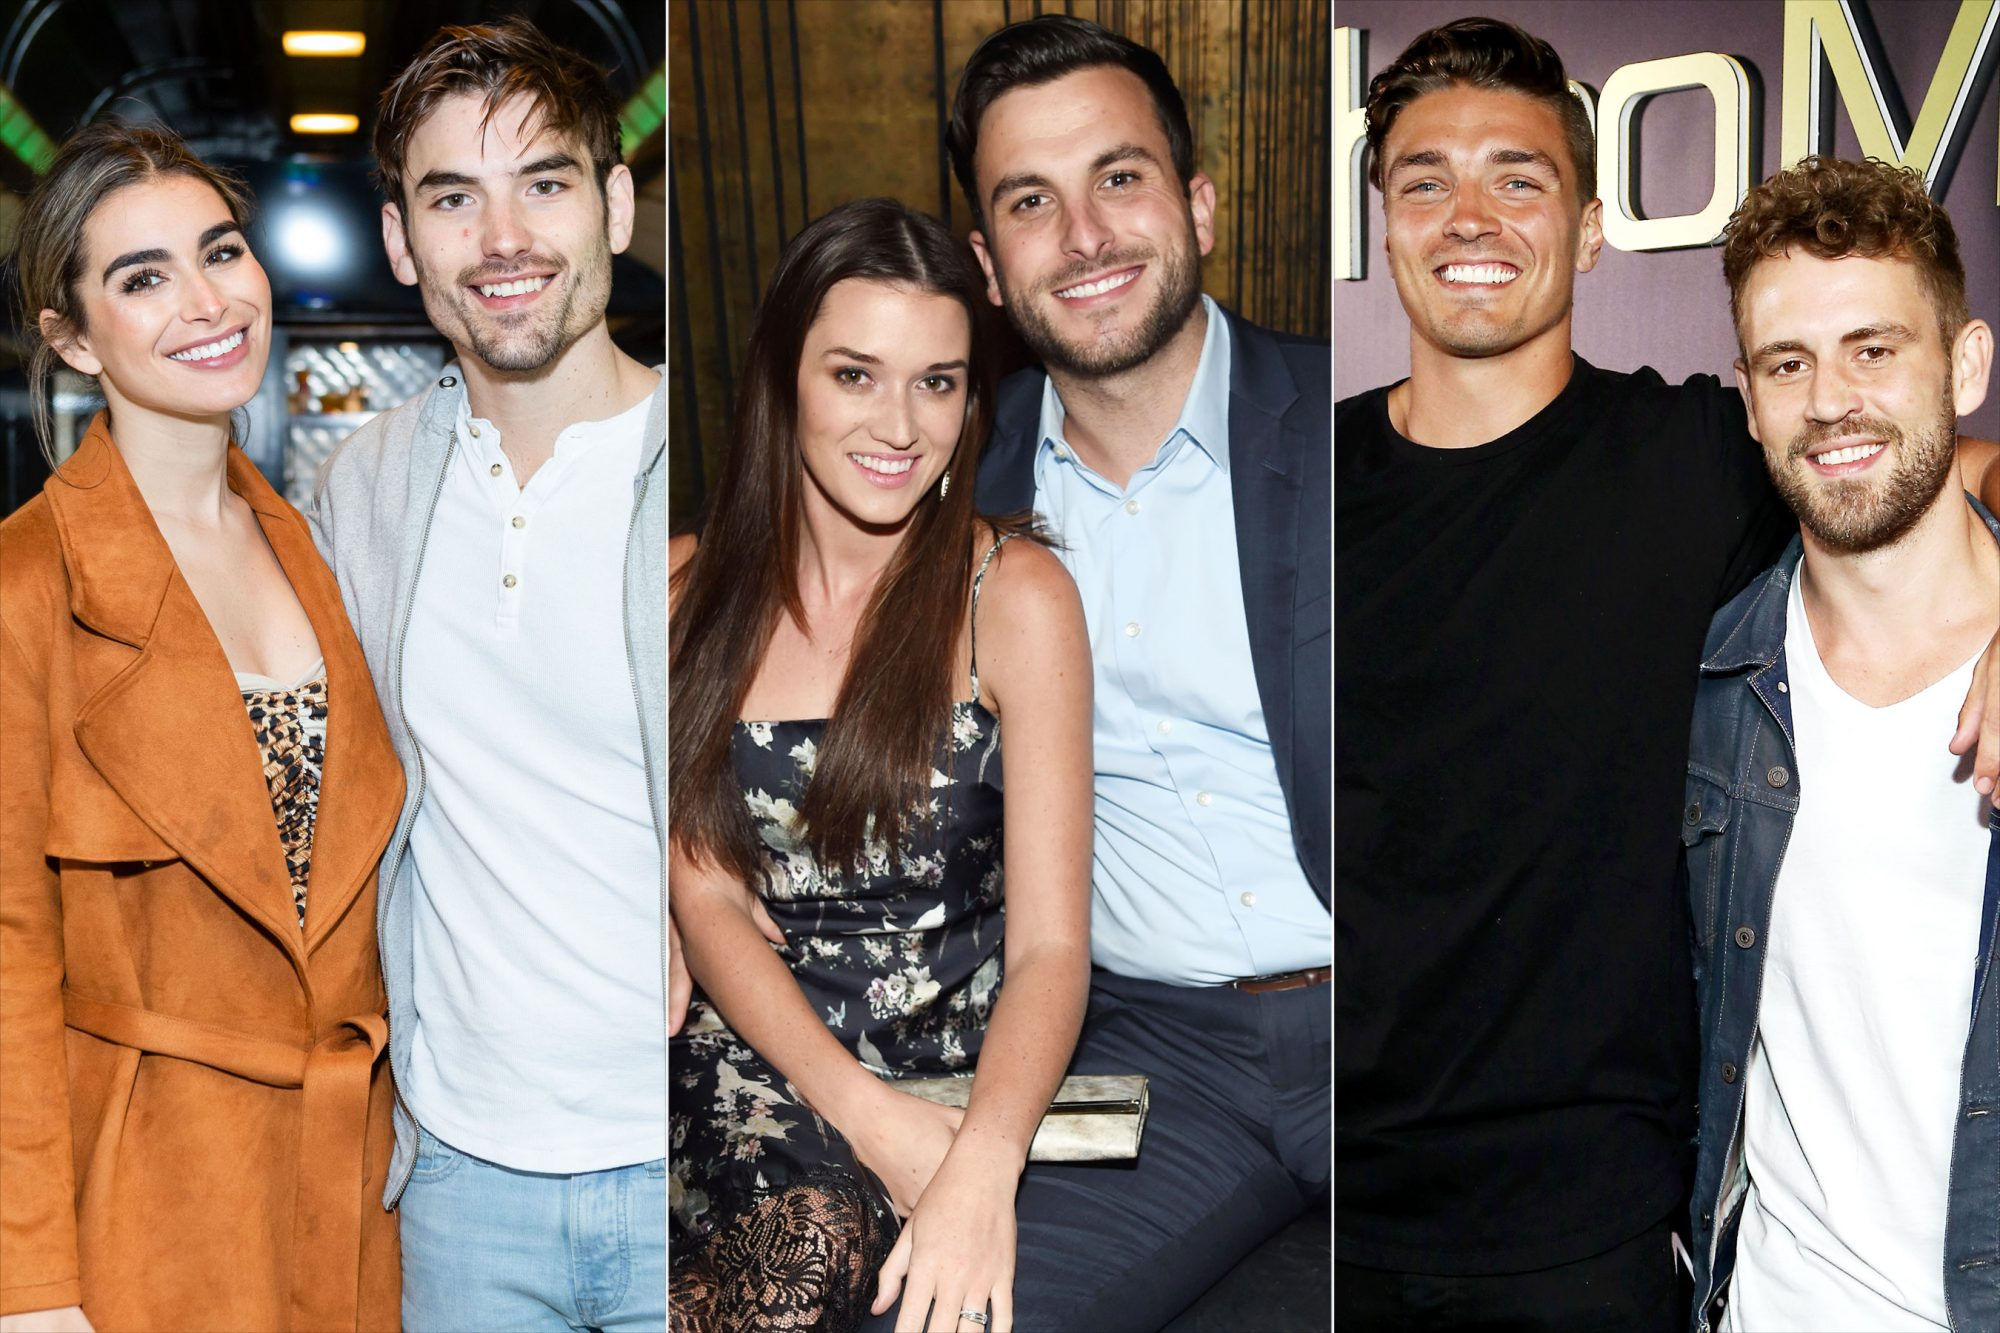 Dean Unglert and Nick Viall Jade Roper and Tanner Tolbert Ashley Iaconetti, Jared Haibon